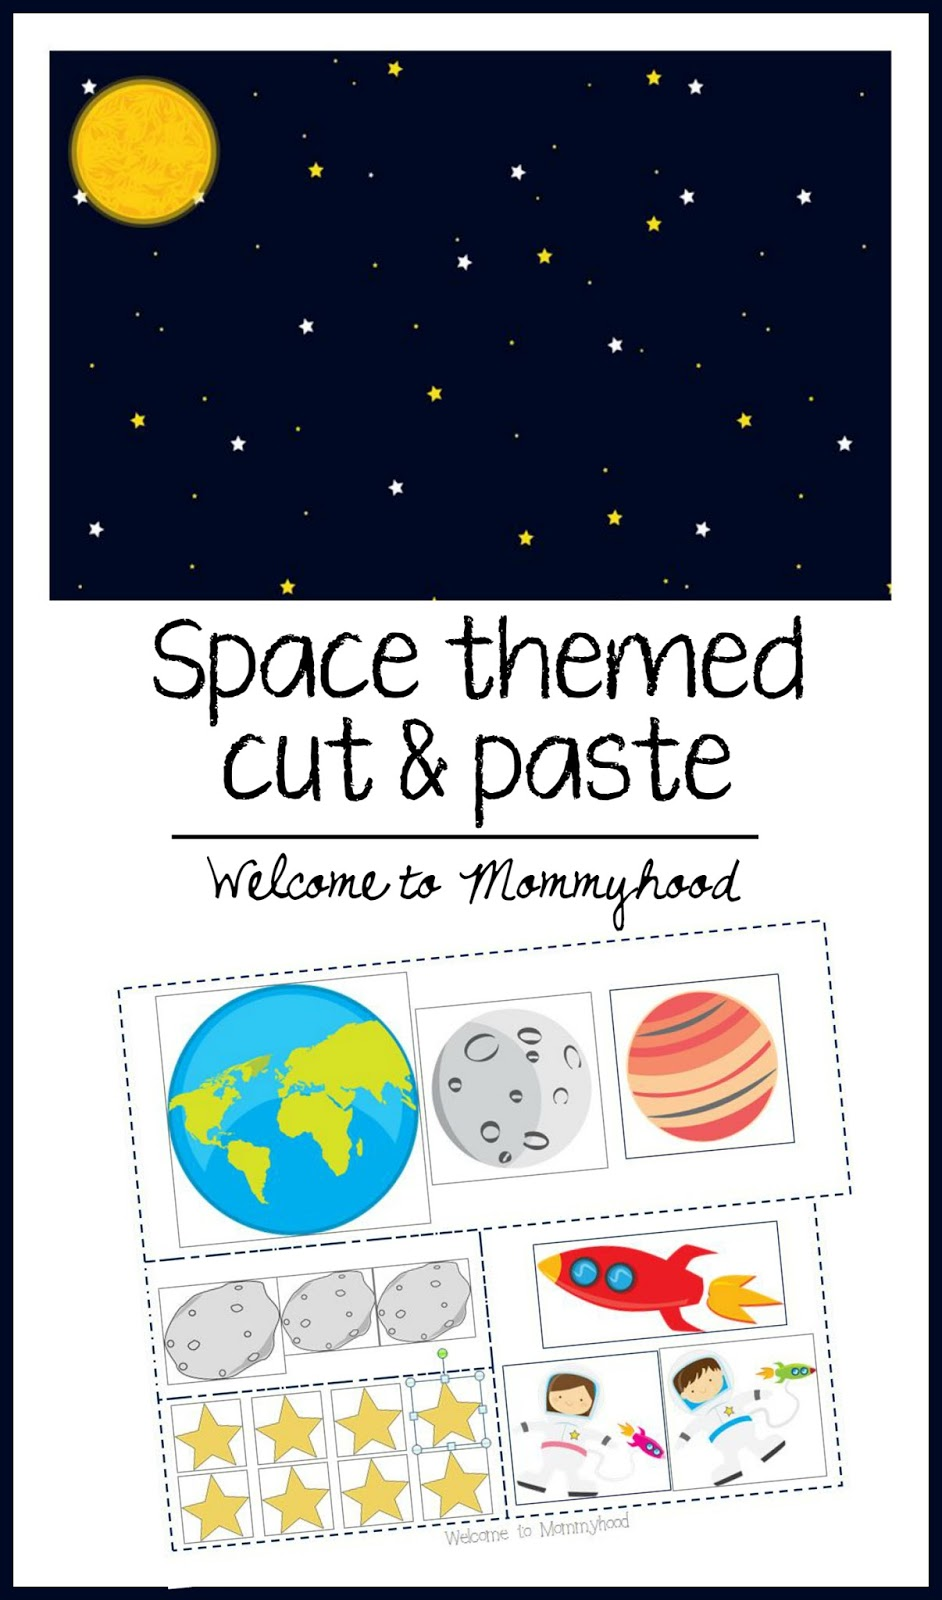 Welcome to Mommyhood: Space themed cut and paste